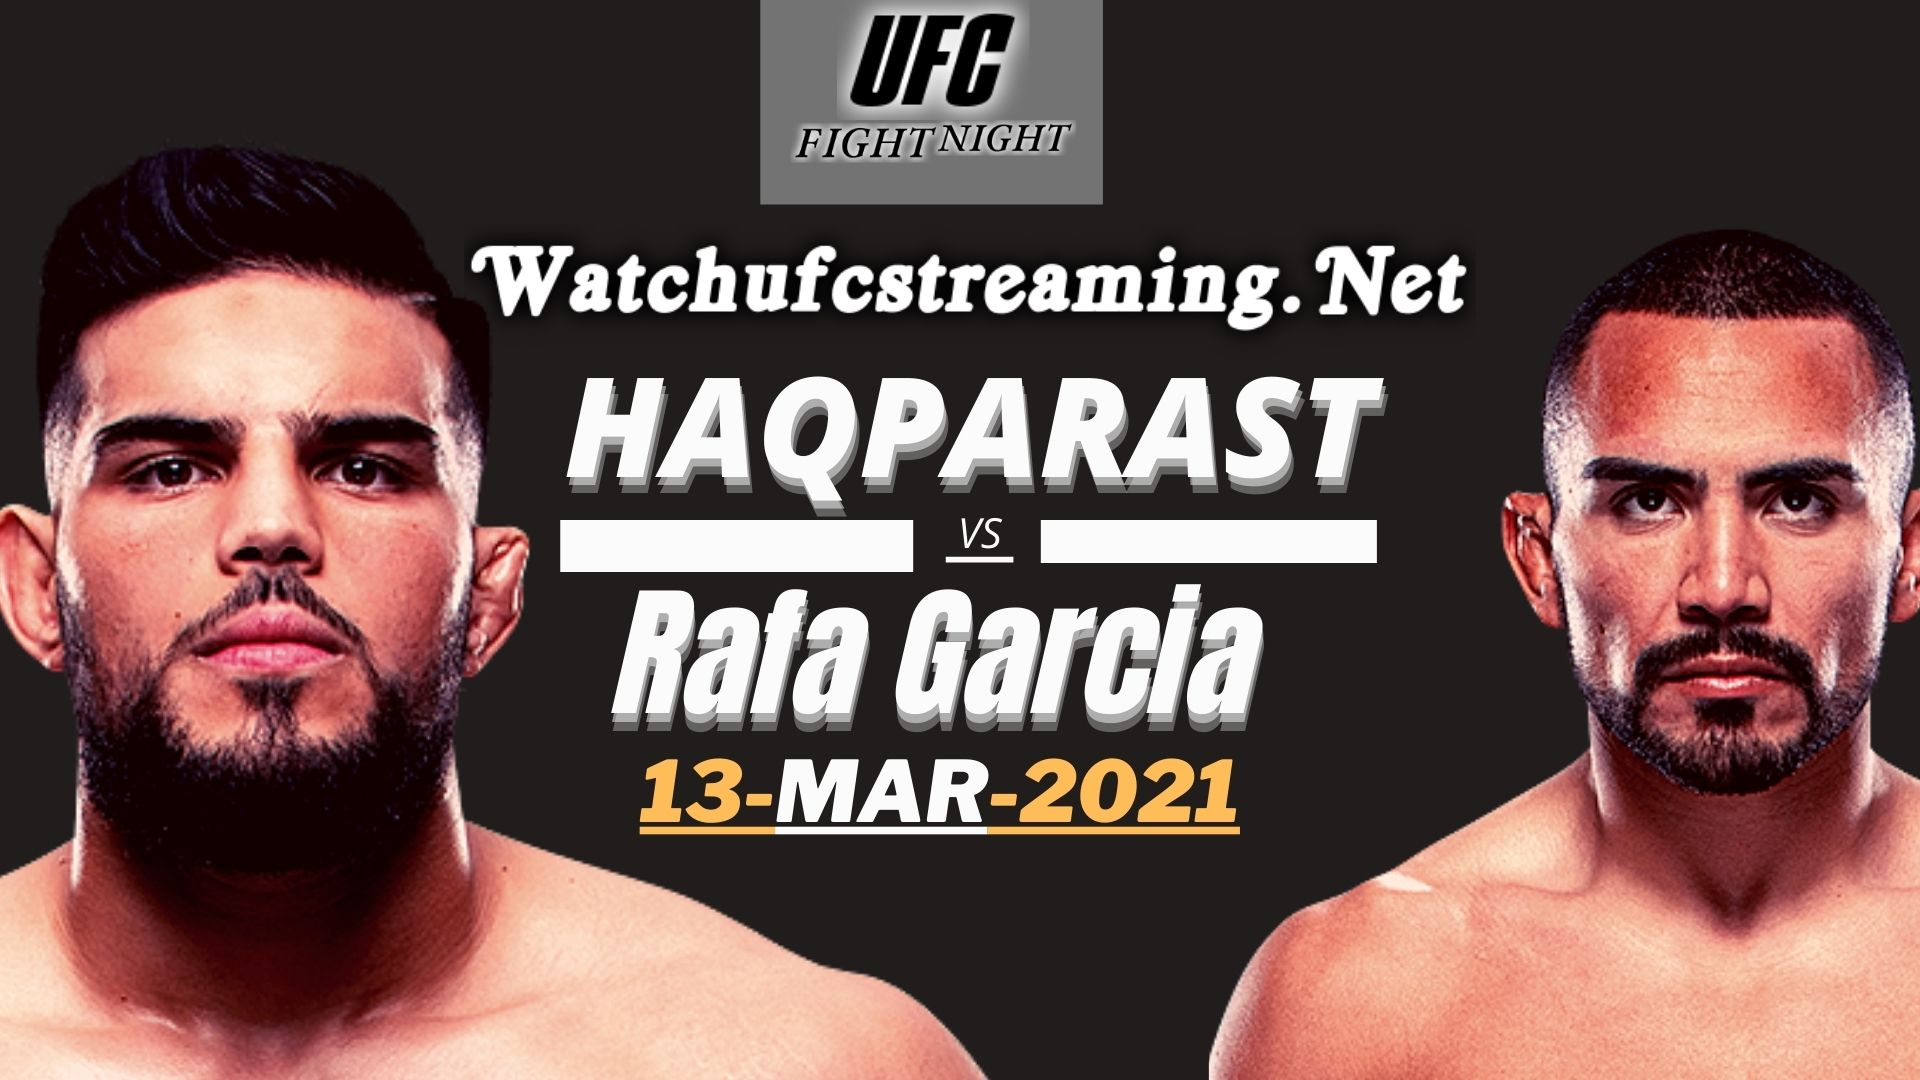 UFC | Nasrat Vs Garcia Highlights 2021 - Lightweight